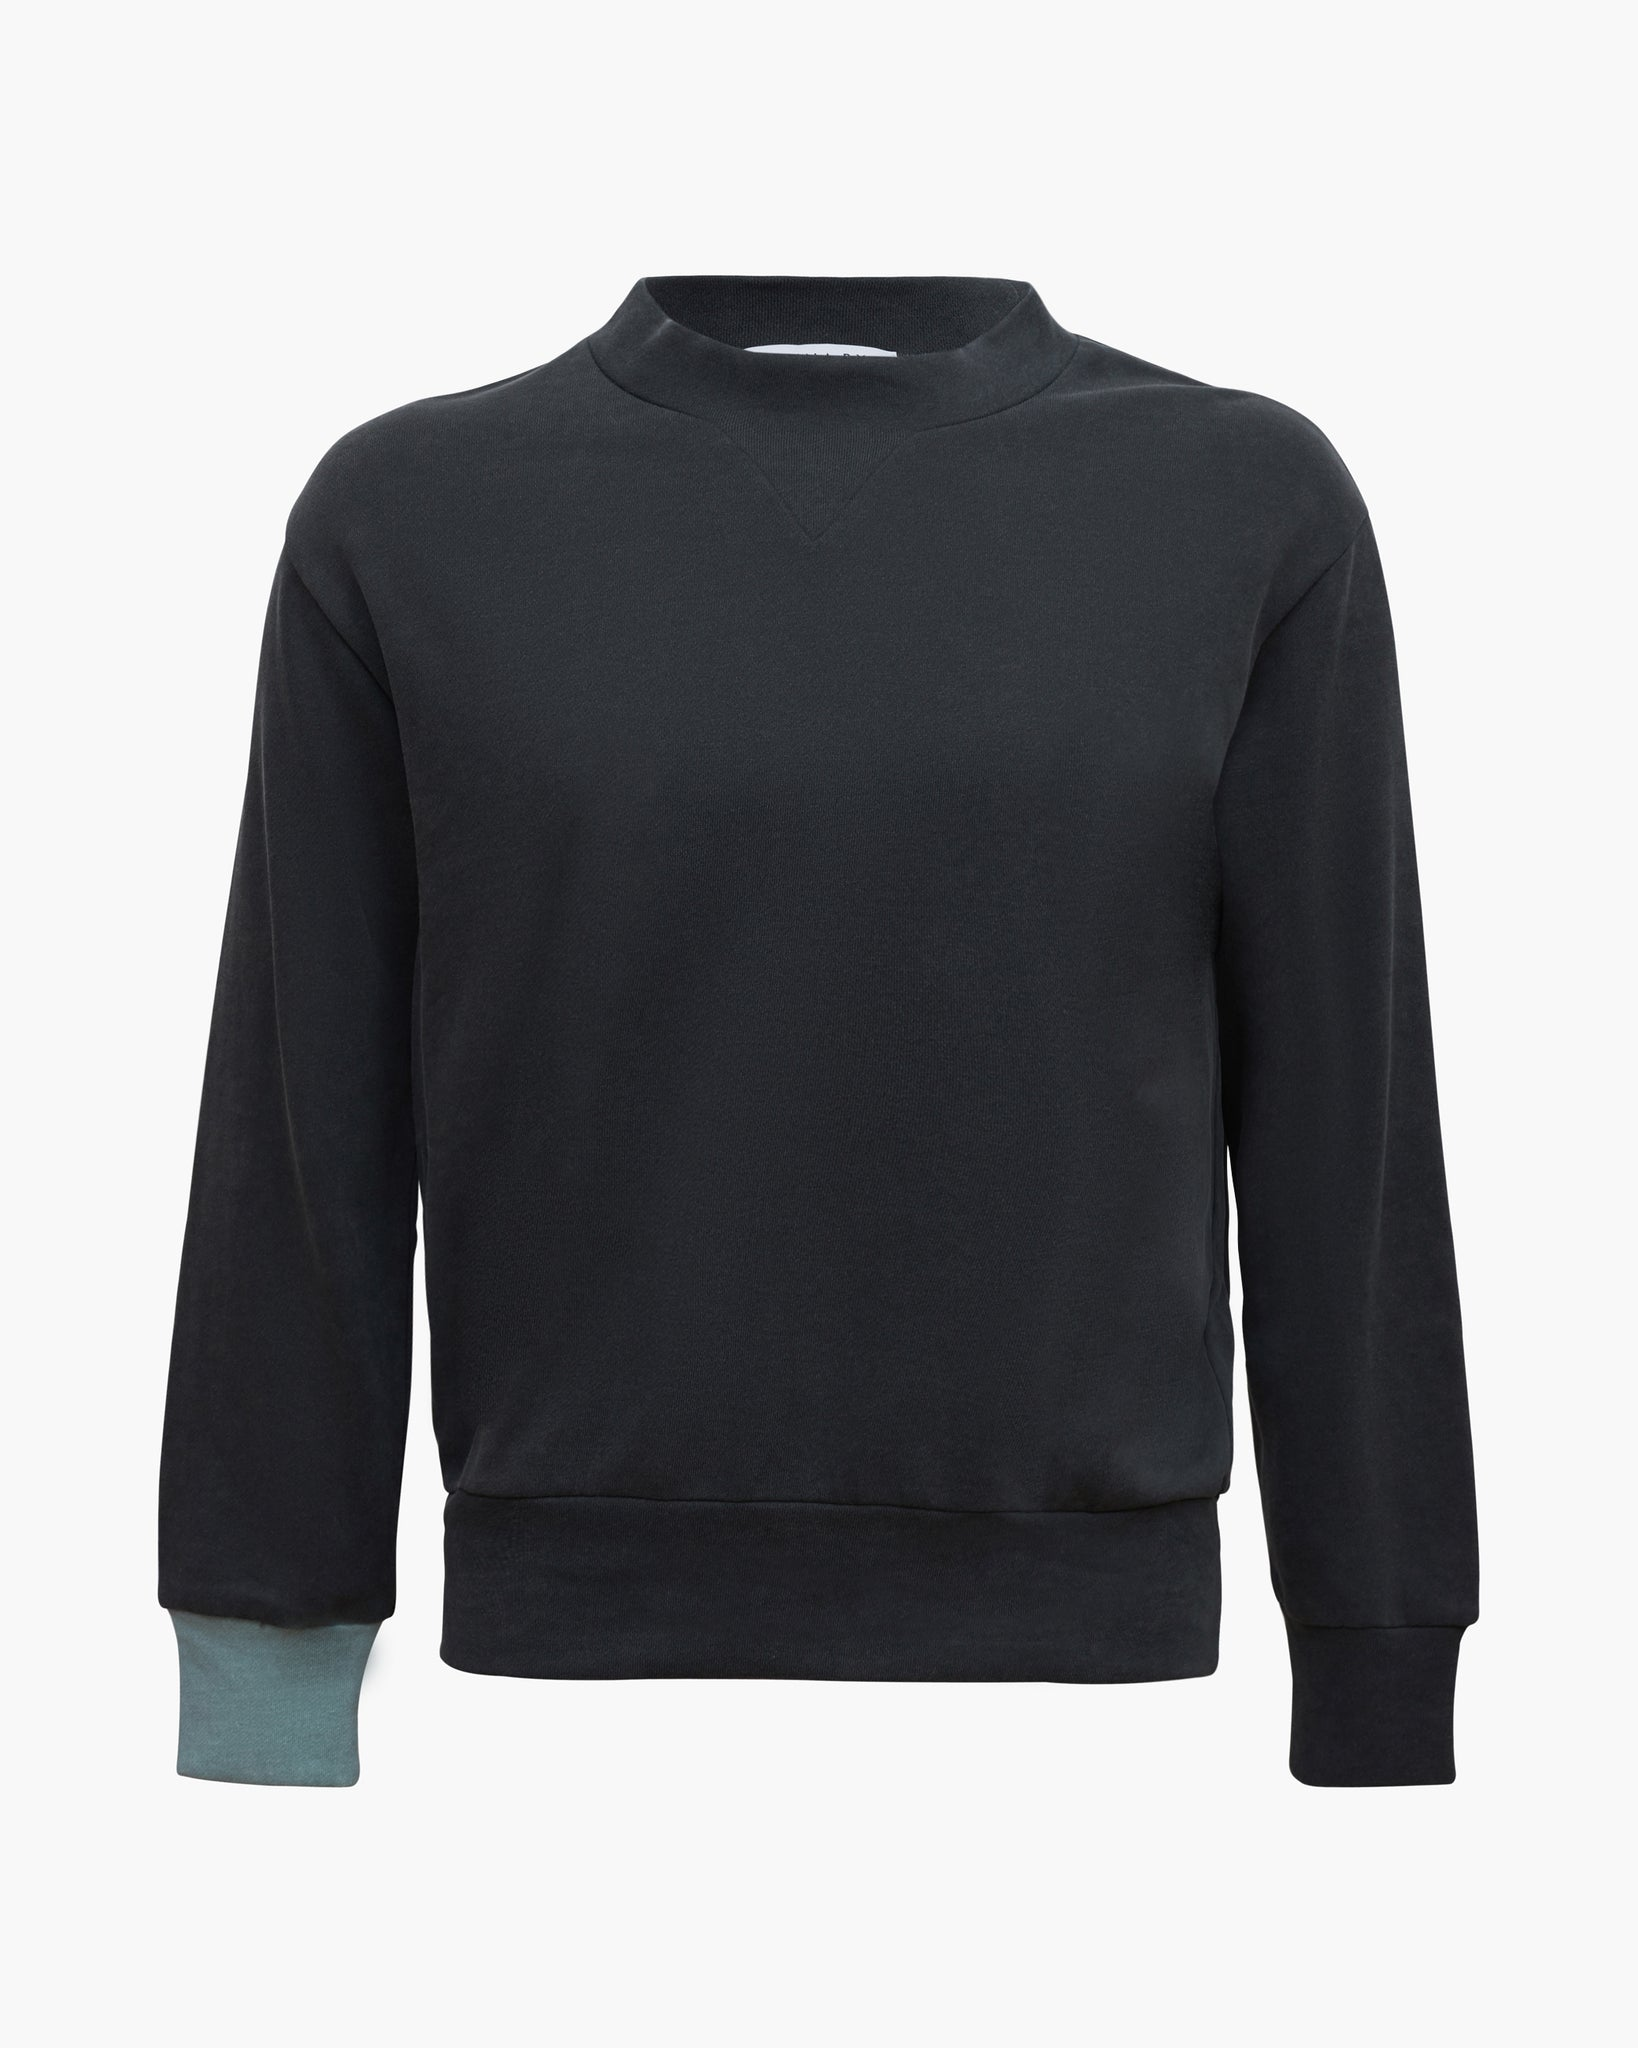 Drew Sweatshirt Cotton Sweatshirt Black Mix  - UNISEX